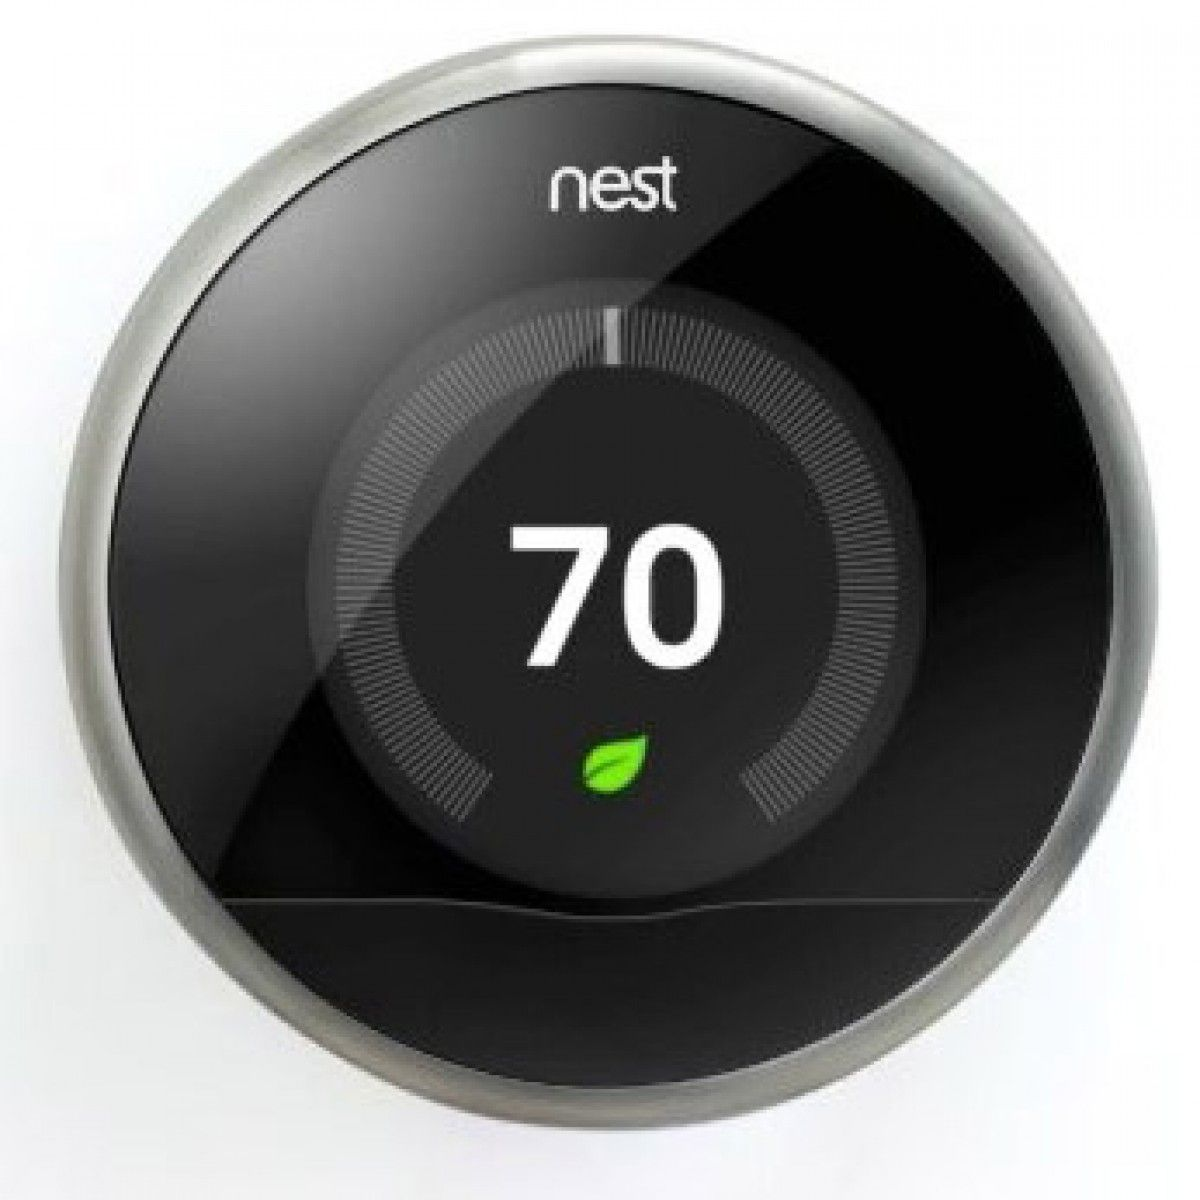 nest 3rd generation video 5 wire motorcycle trailer wiring diagram learning thermostat wifi in